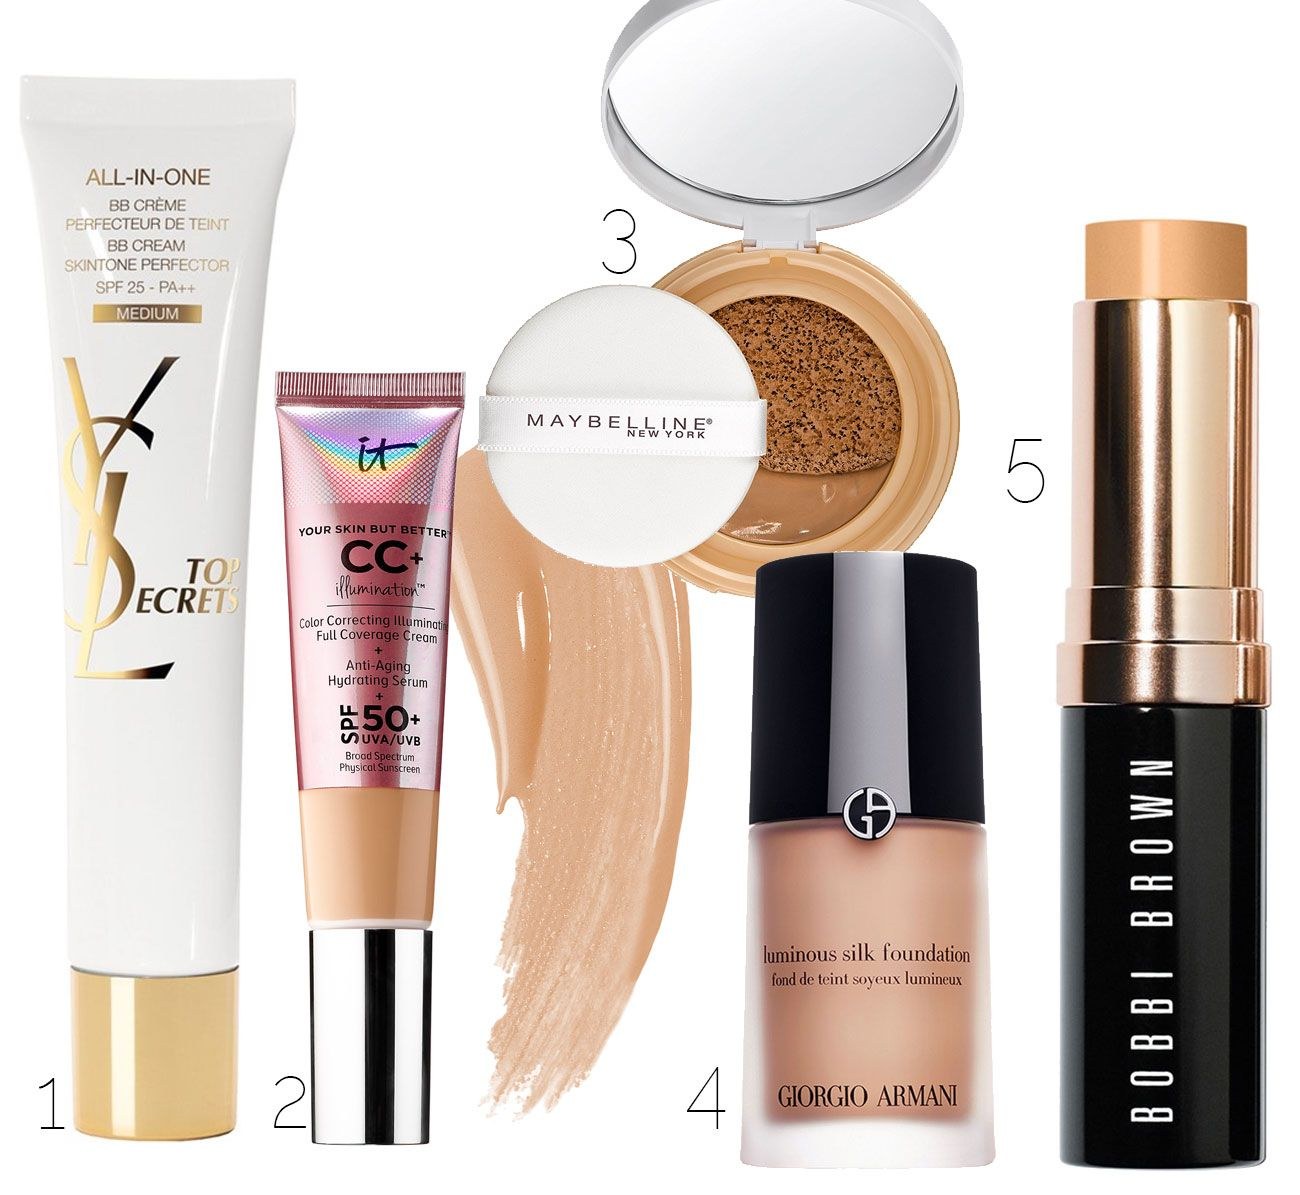 This is the best list of MUST HAVE makeup items! 5 items for the perfect makeup kit, and great product recommendations for each step!